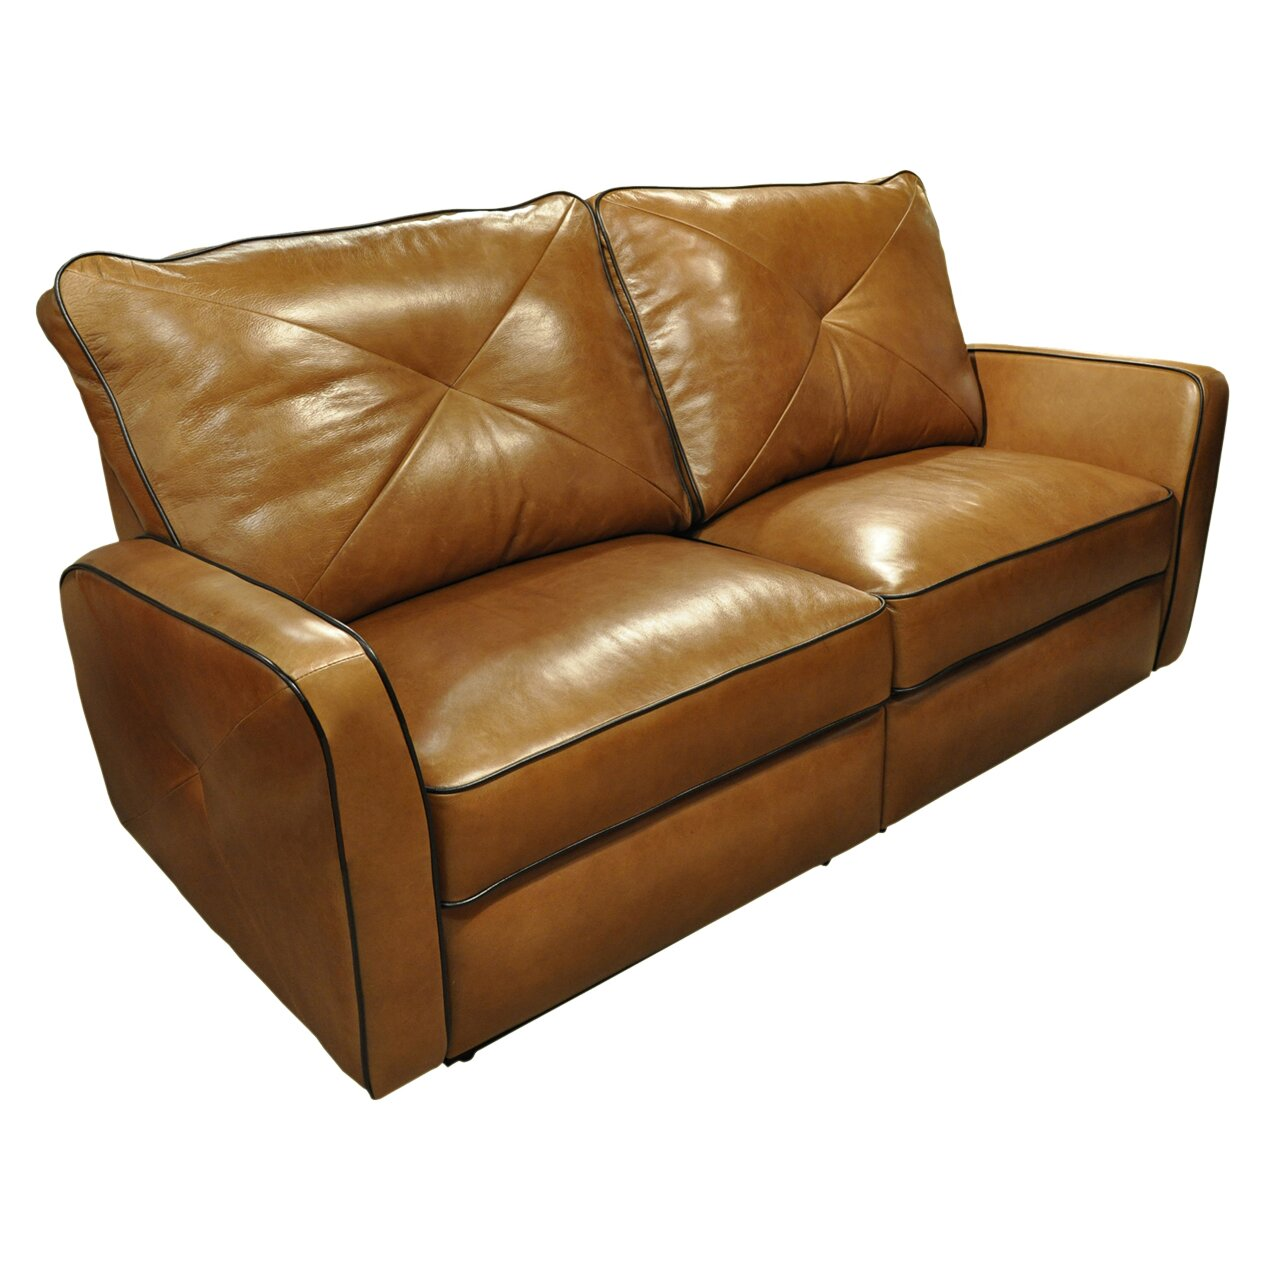 Omnia leather bahama leather reclining loveseat reviews Reclining leather sofa and loveseat